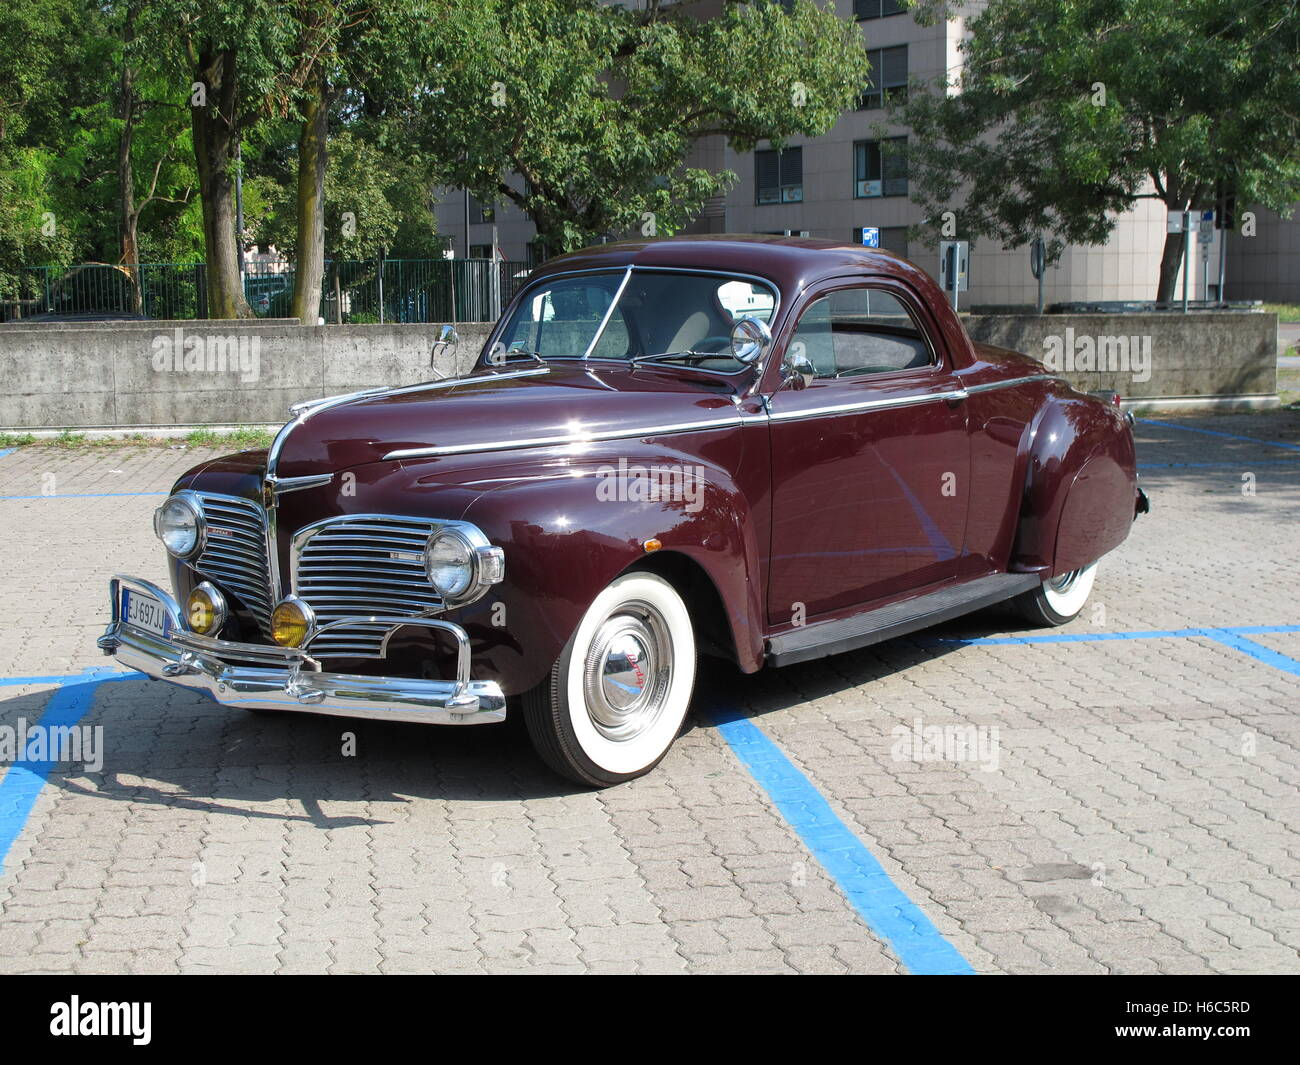 1941 dodge business coupe vintage stock photos \u0026 1941 dodge business